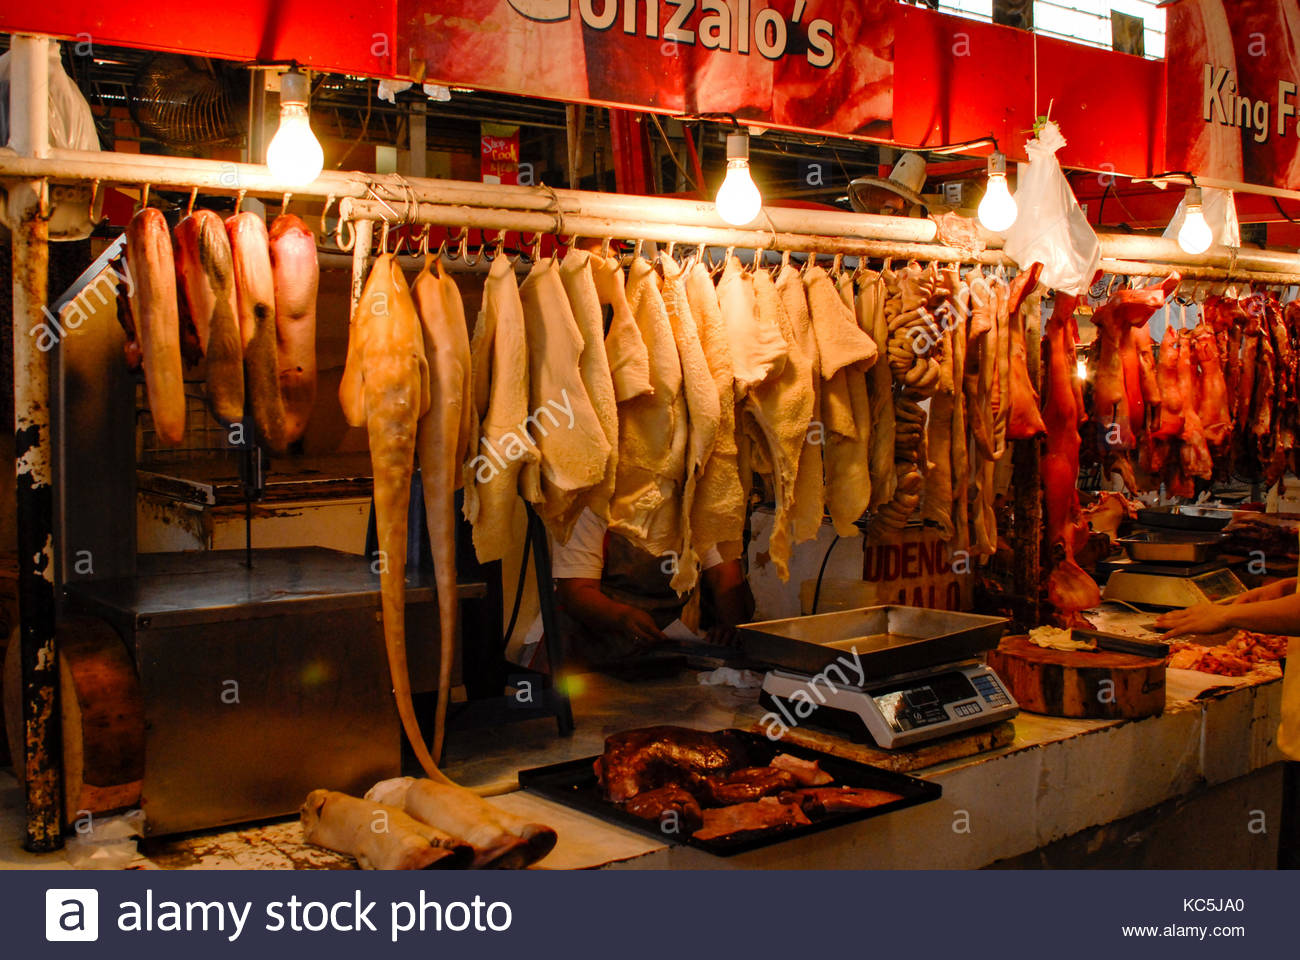 meat market stock images - photo #43